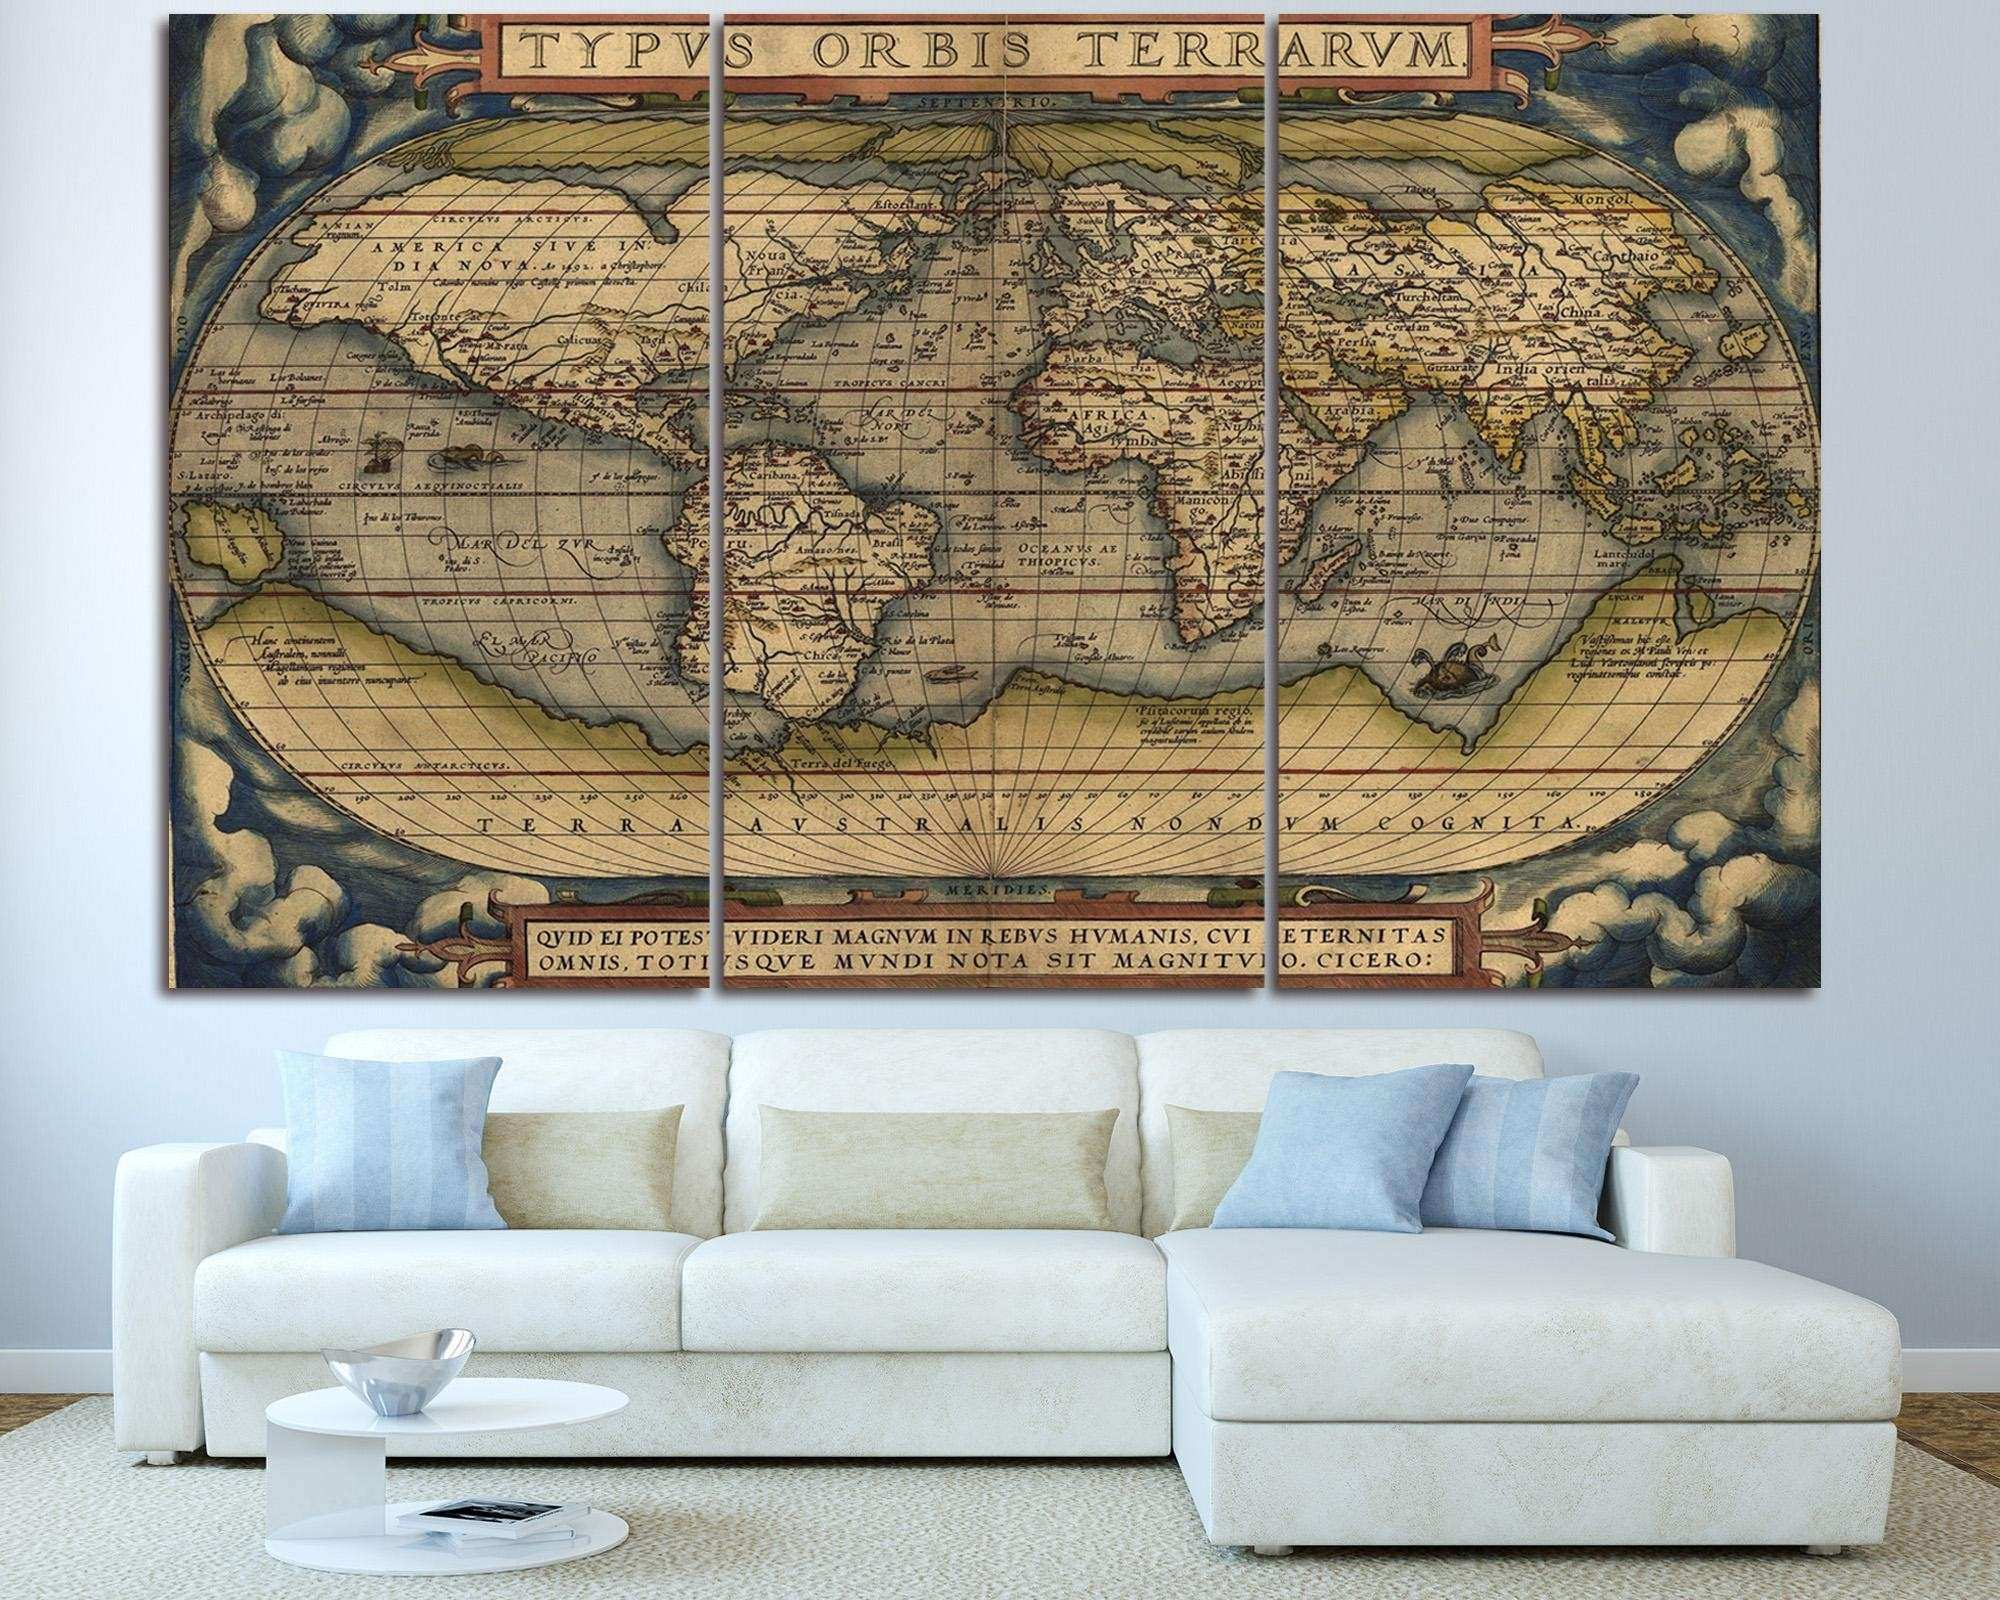 3 Piece Canvas World Map.Free Download Image Best Of 3 Piece World Map Wall Art 650 520 3